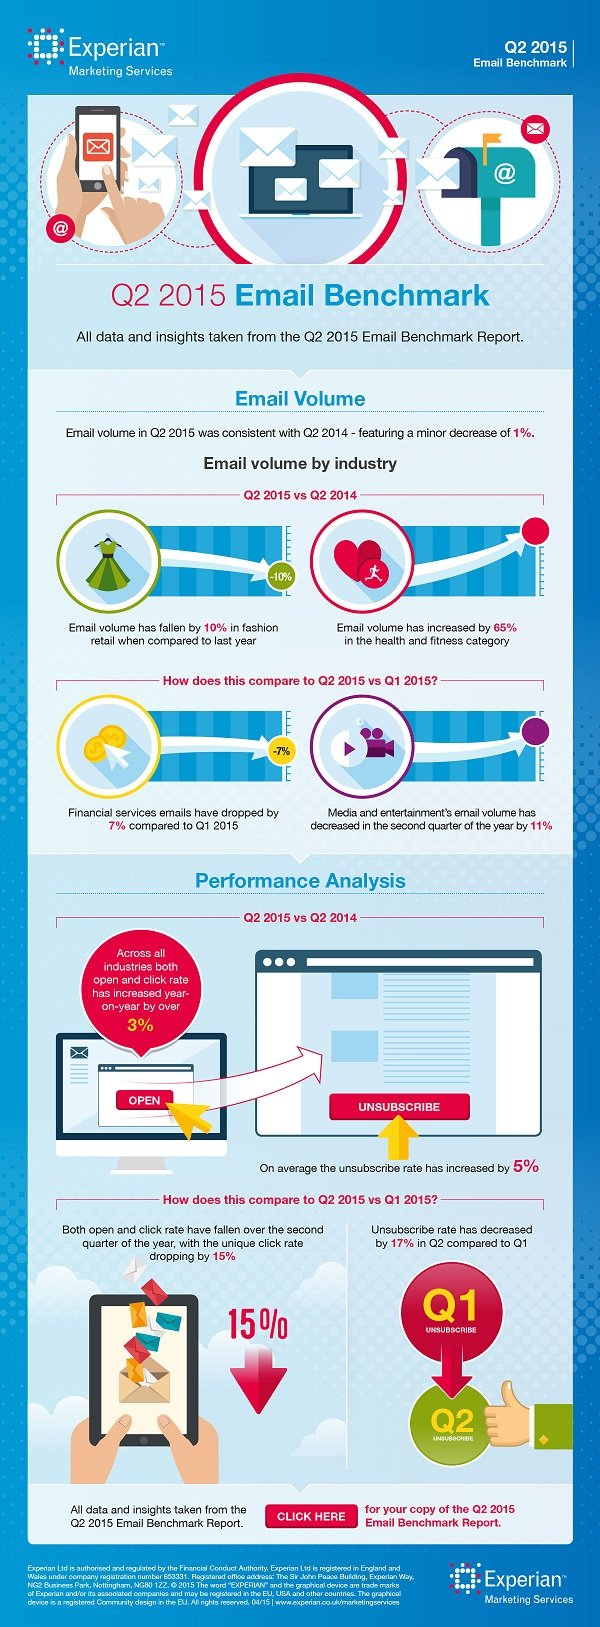 experian q2 2015 email benchmark